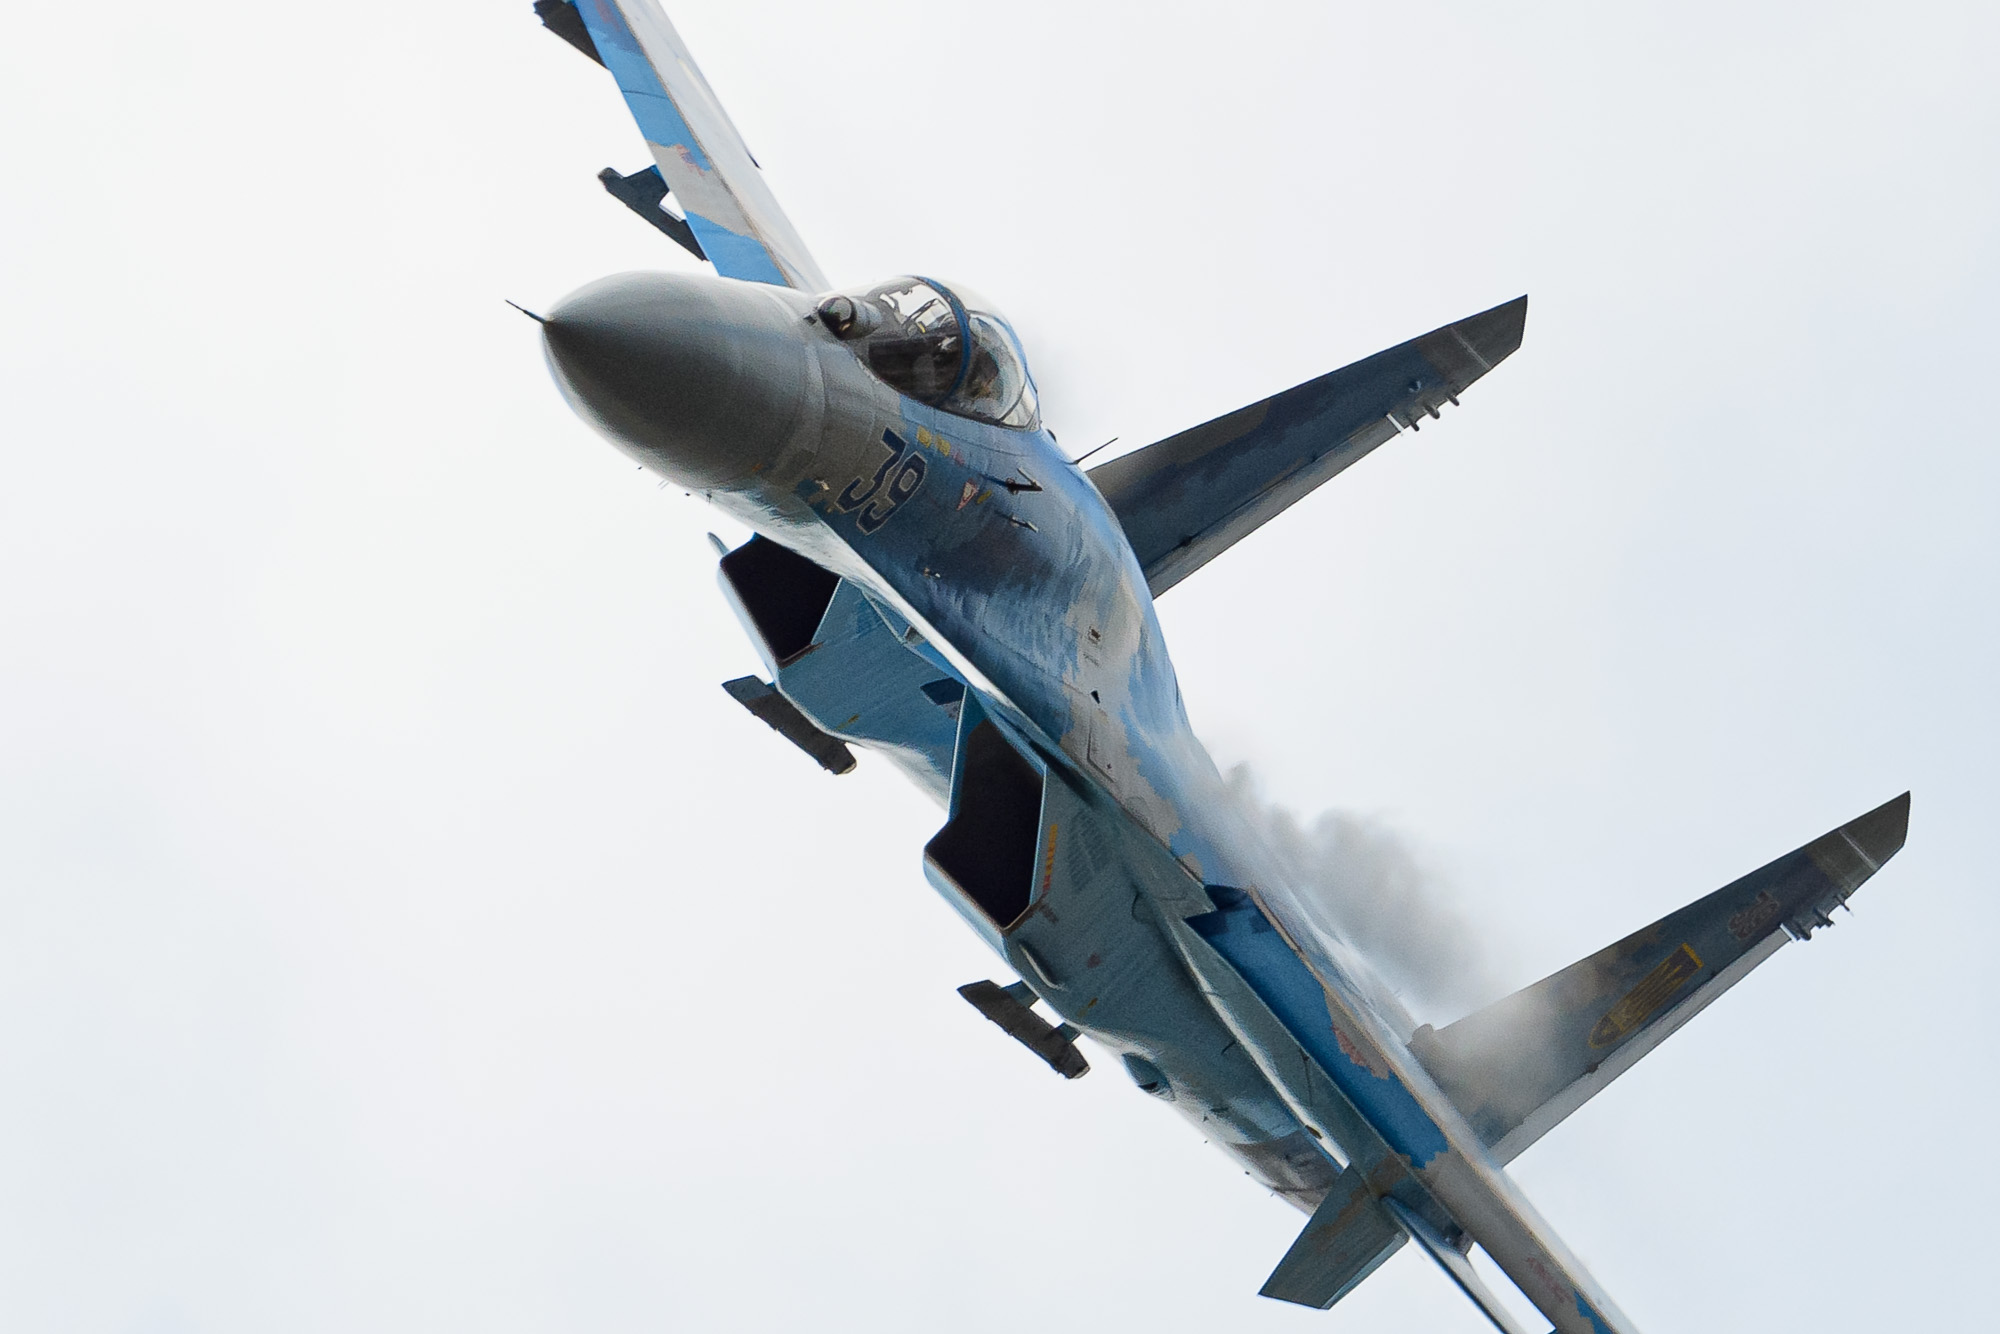 Sukhoi SU-27/P single seat fighter Flanker-B, Ukrainian Air Force